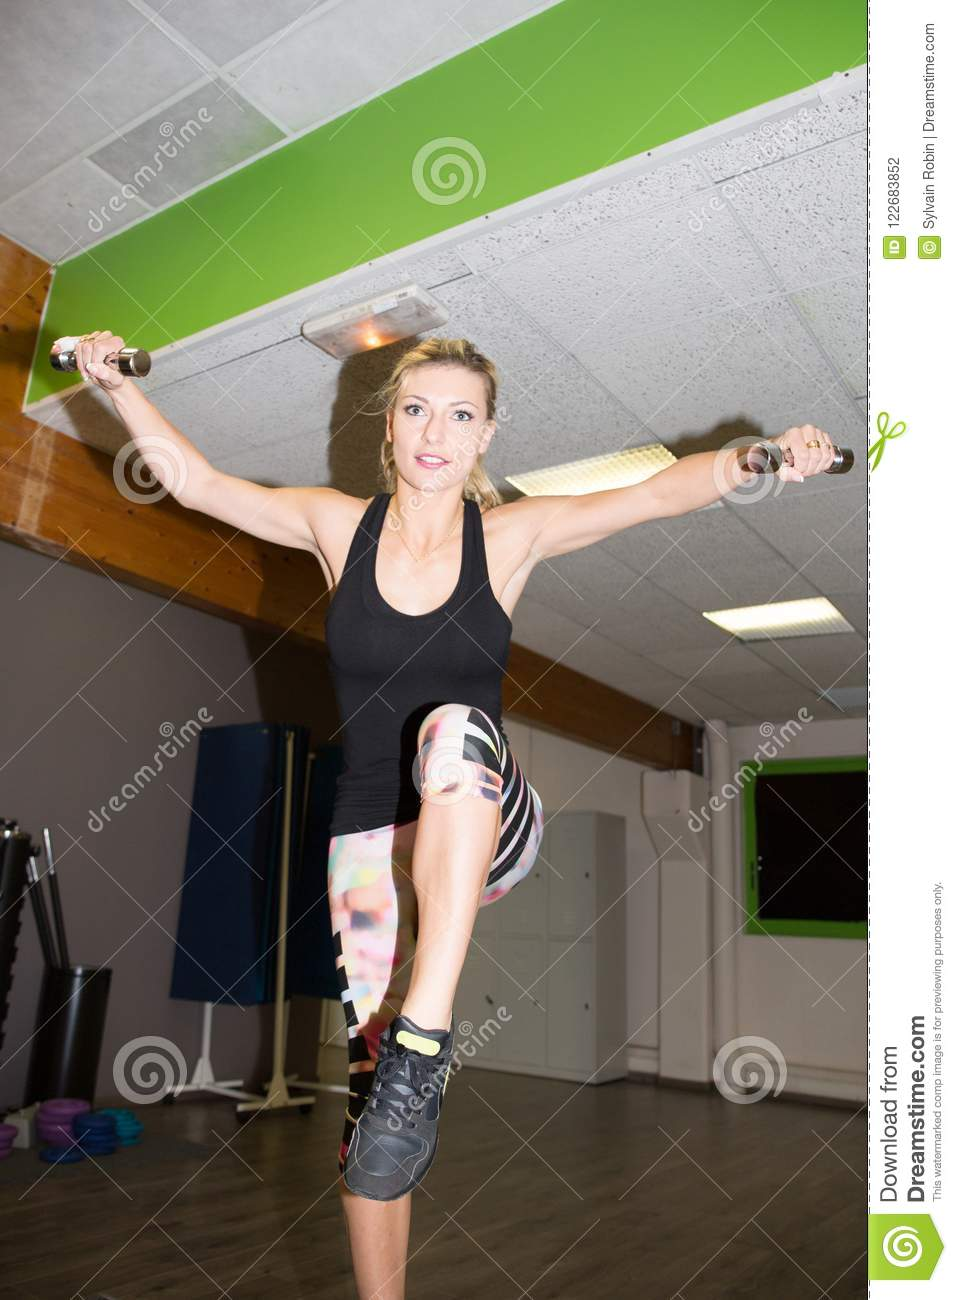 blonde beauty young woman in gym working out with pair of dumbbells in health and fitness concept